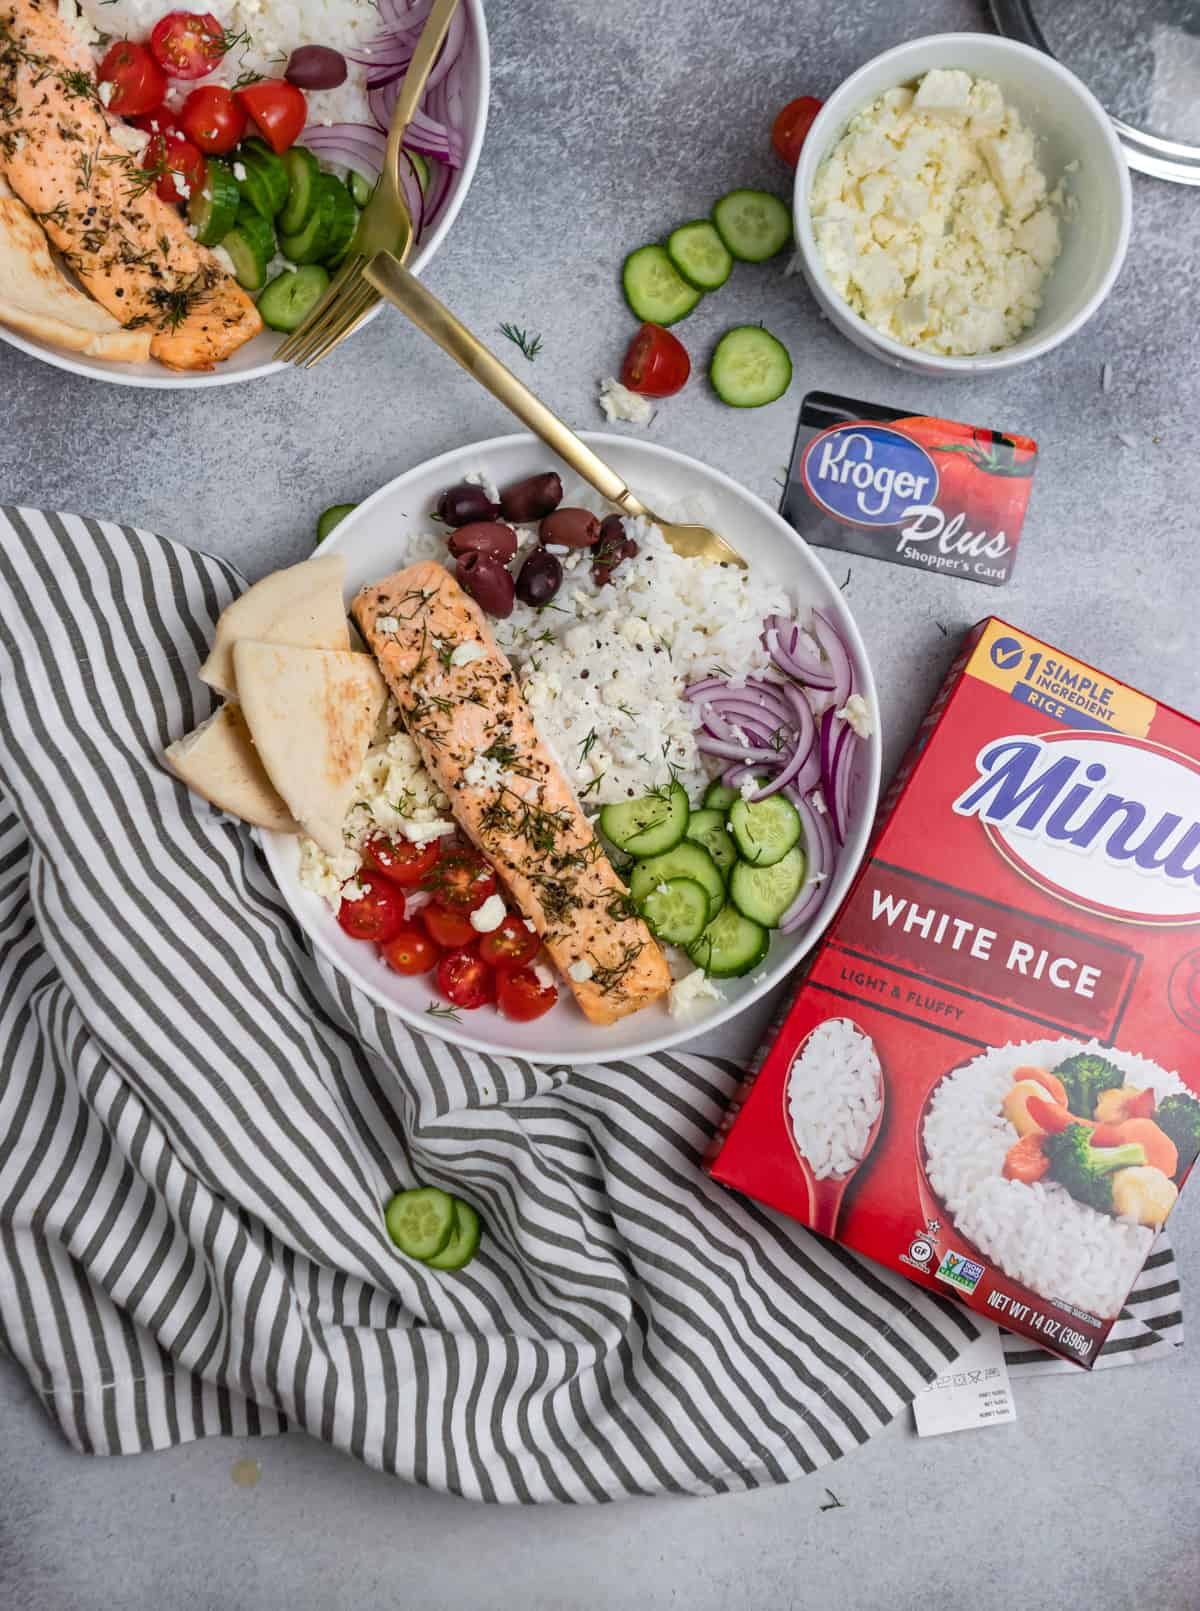 Greek salmon rice bowls with box of minute rice, Kroger card and linens.